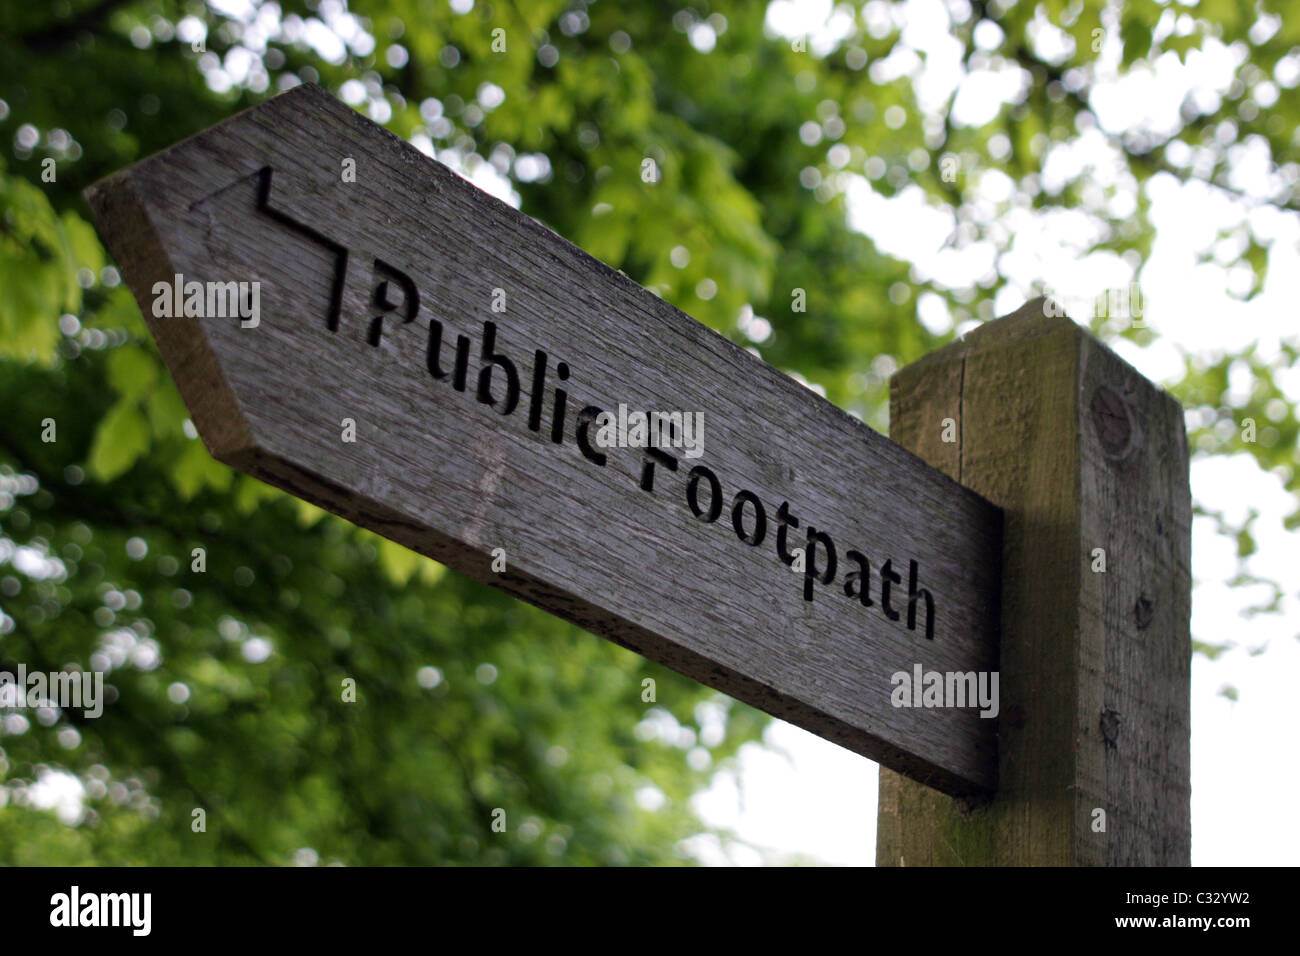 wooden public footpath sign - Stock Image